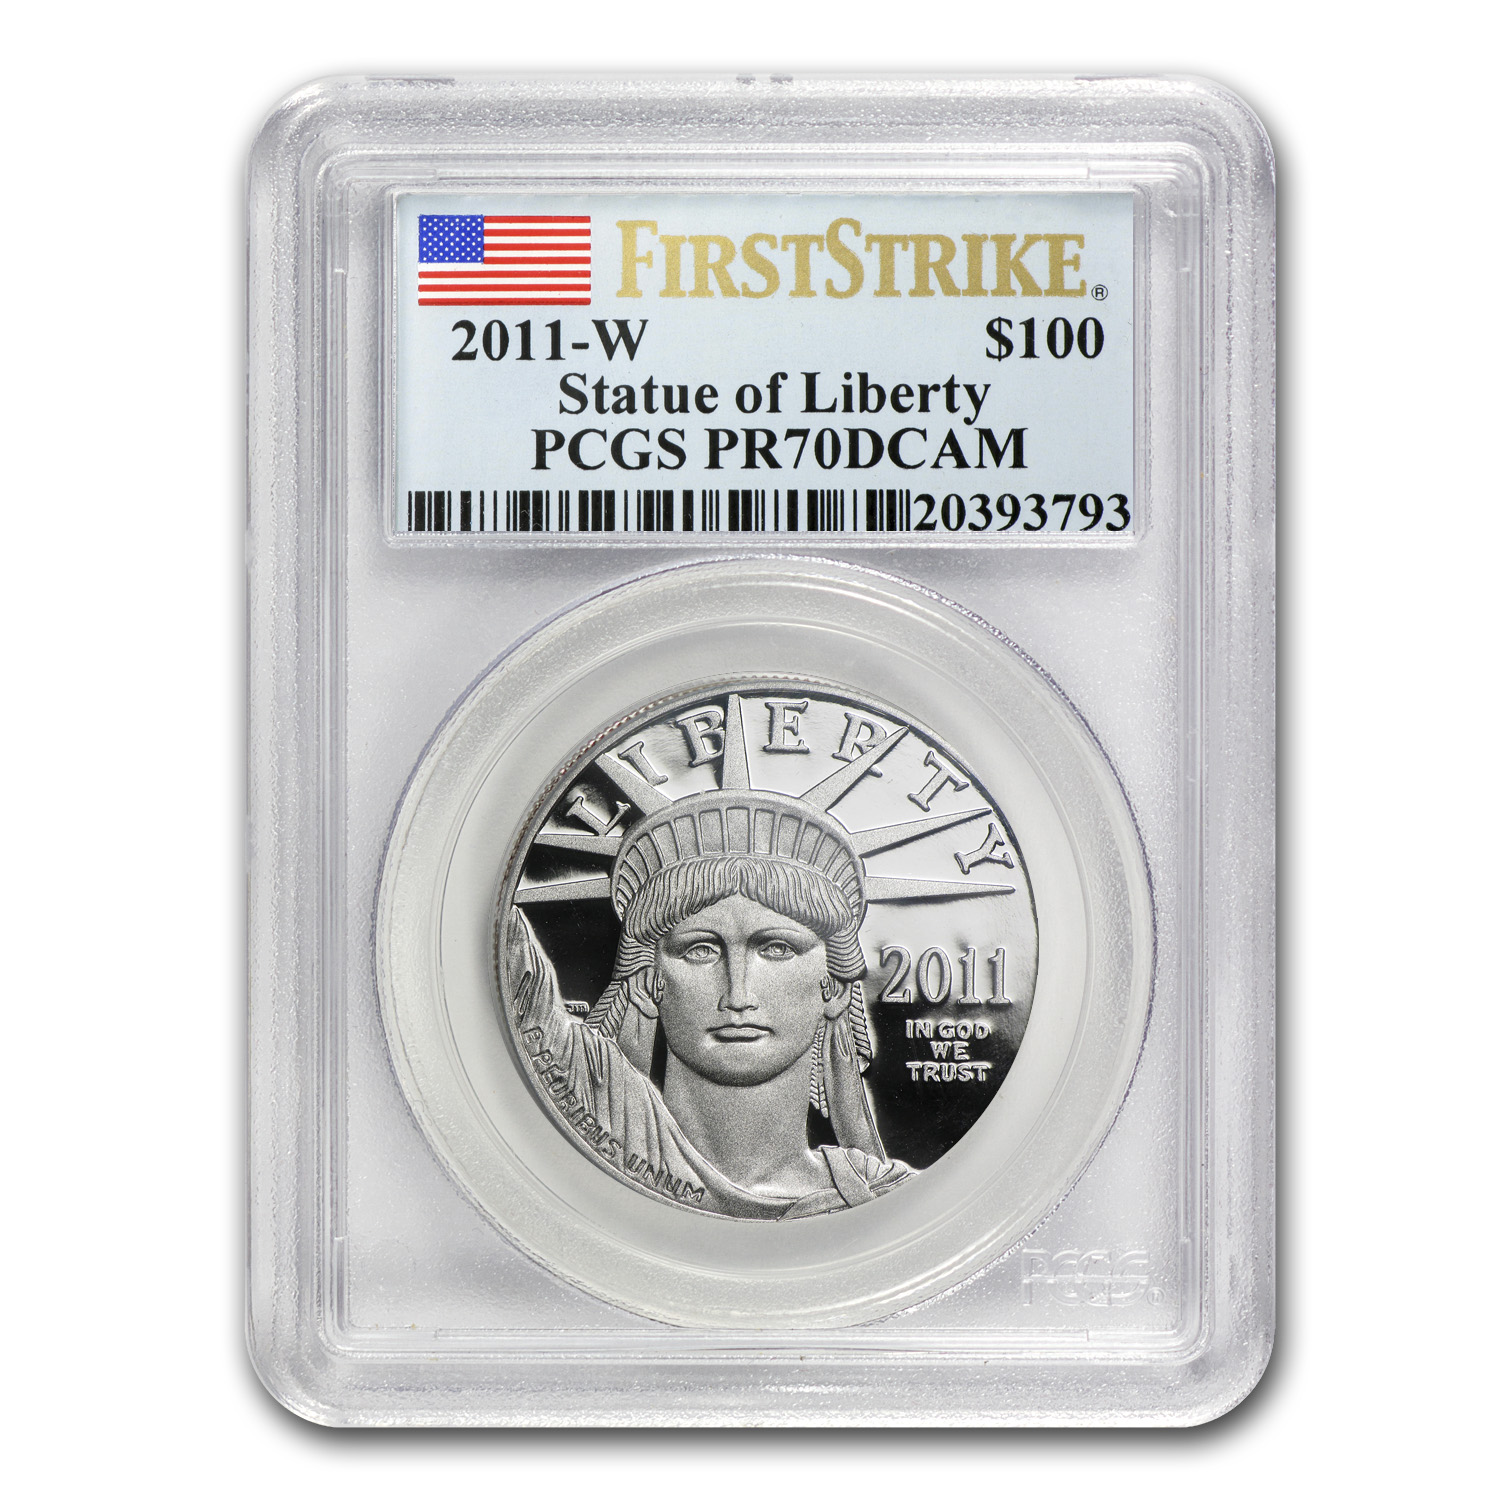 2011-W 1 oz Proof Platinum American Eagle PCGS PR-70 First Strike